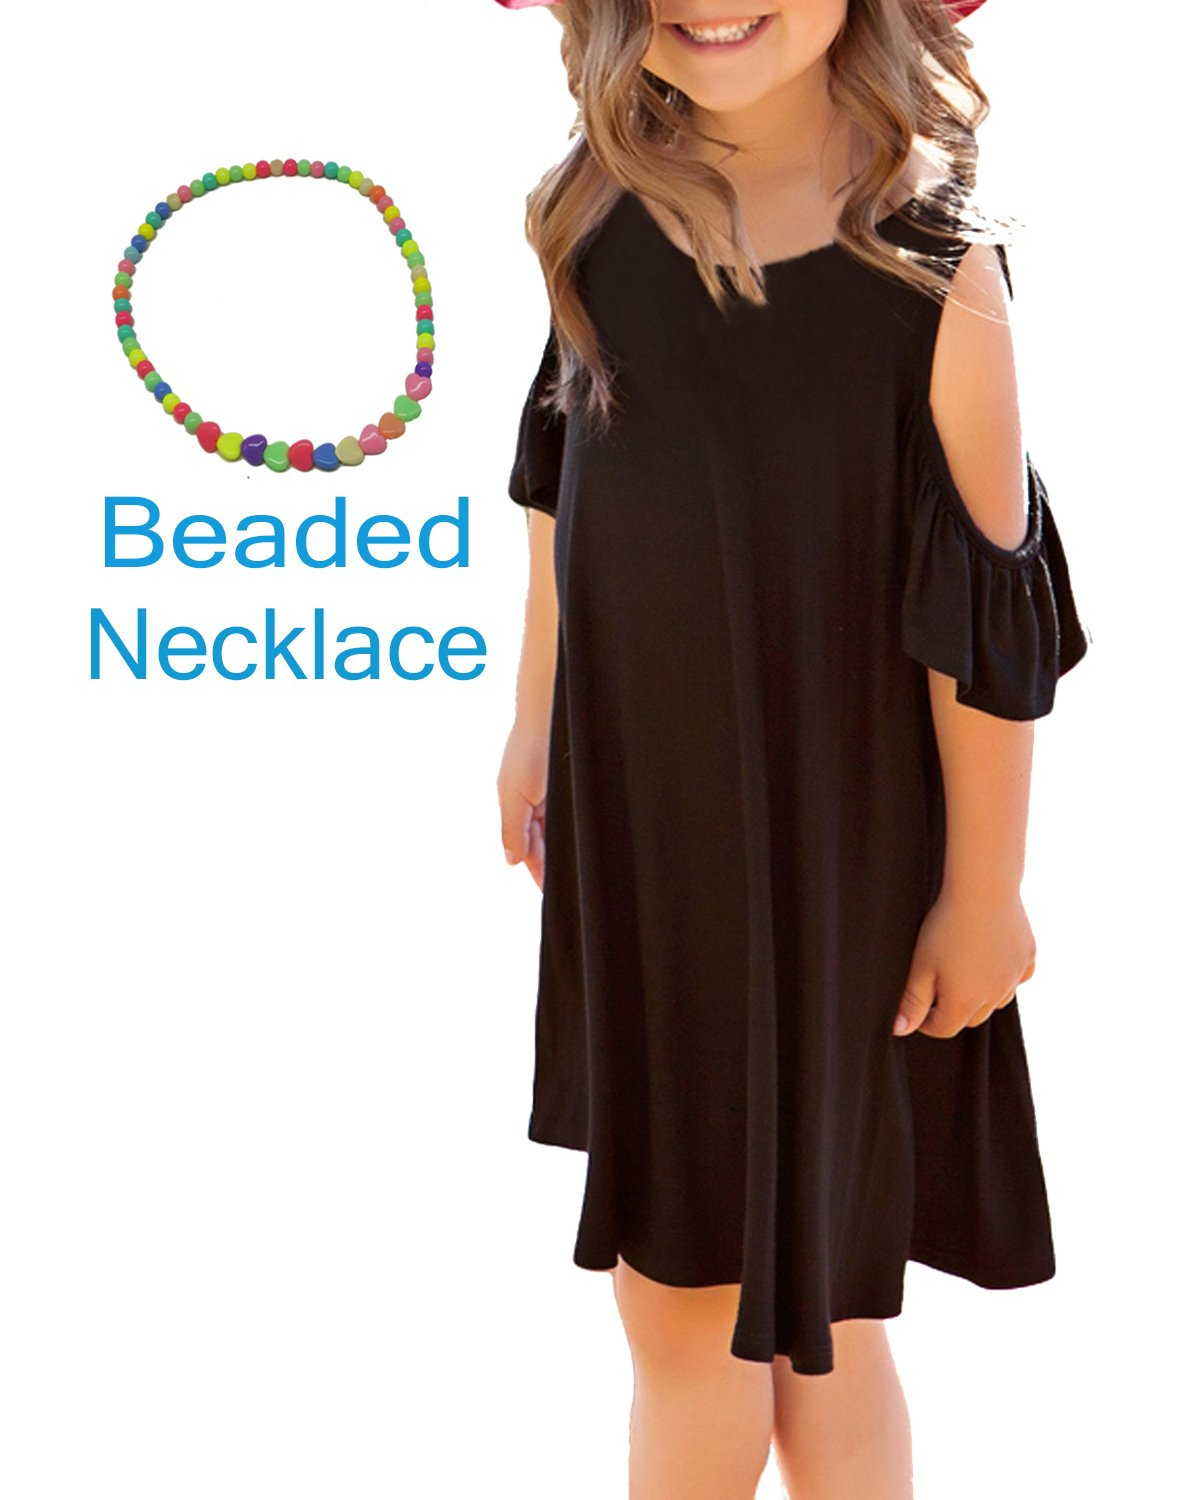 Sylaon 2018 Girls Casual Ruffle Sleeves Cold Shoulder Dress Swing Beach Dresses with Beaded Necklaces for Summer Party 4-13Y (A-Peony Black, 10-11Y/Height 55-58)